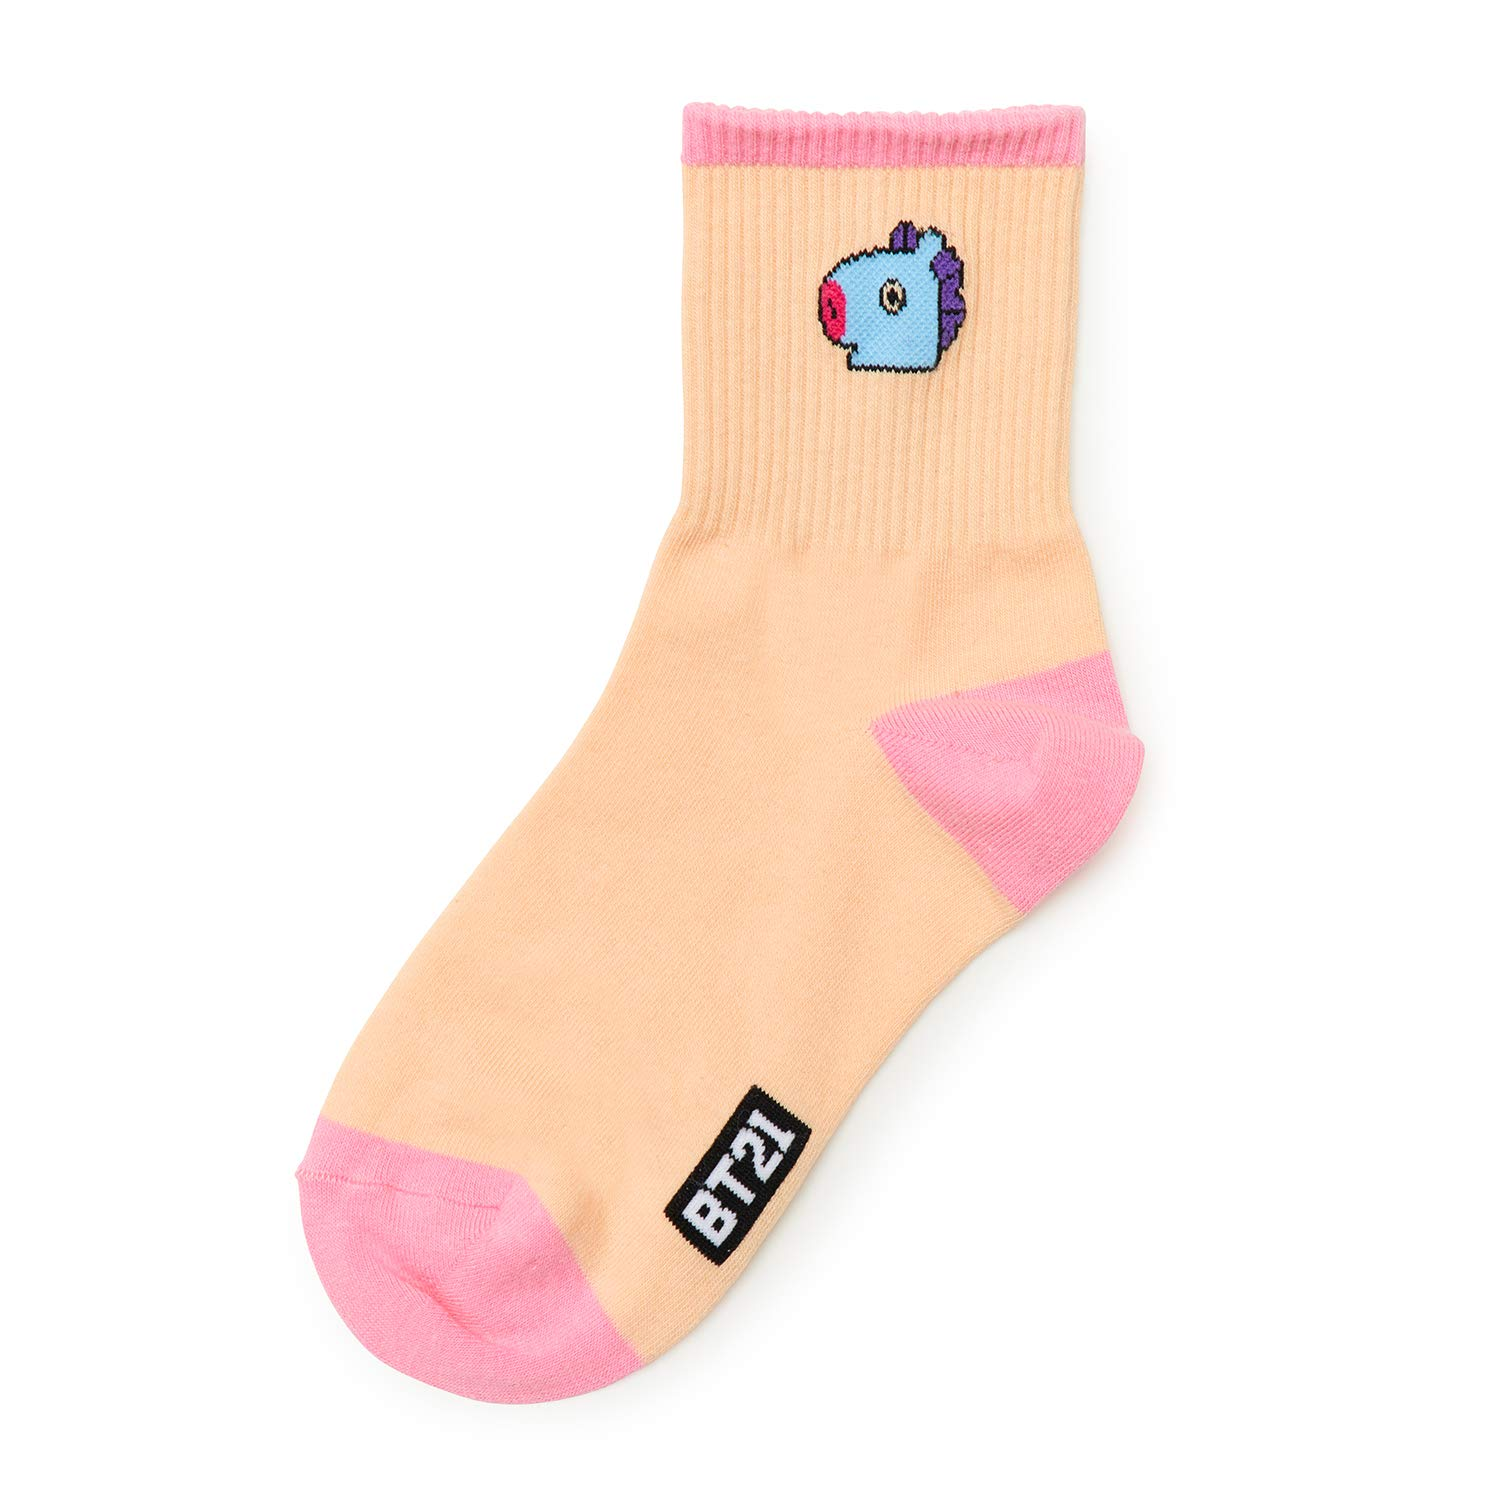 BT21 Official BTS Merchandise by Line Friends - MANG 2-Packs Cute Cotton Socks for Women (Designed by Bangtan Boys) by BT21 (Image #3)